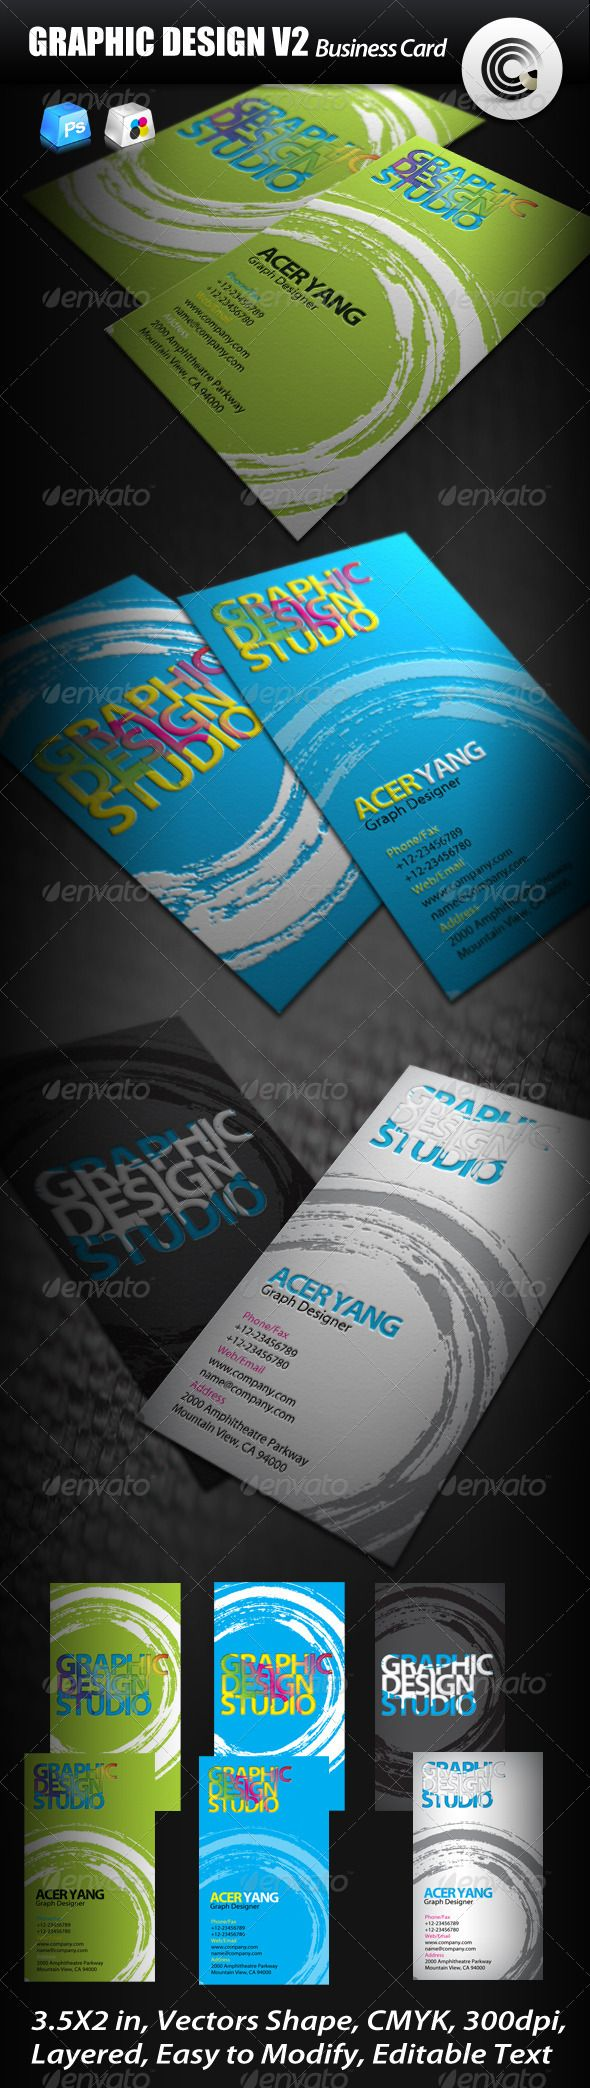 Graphic Design Studio Business Card